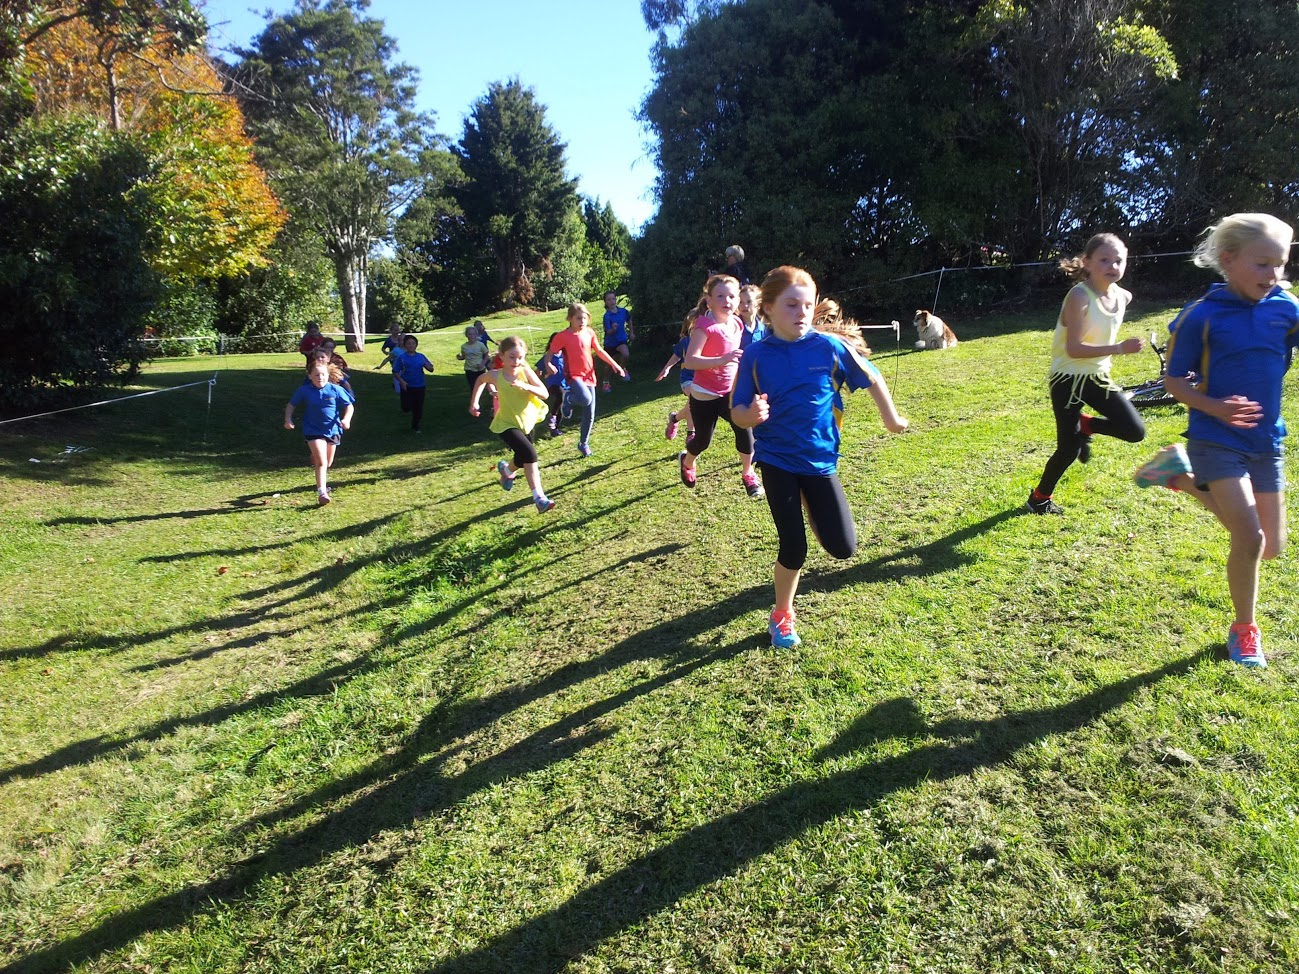 Waihi East School Cross Country (2.06.16)